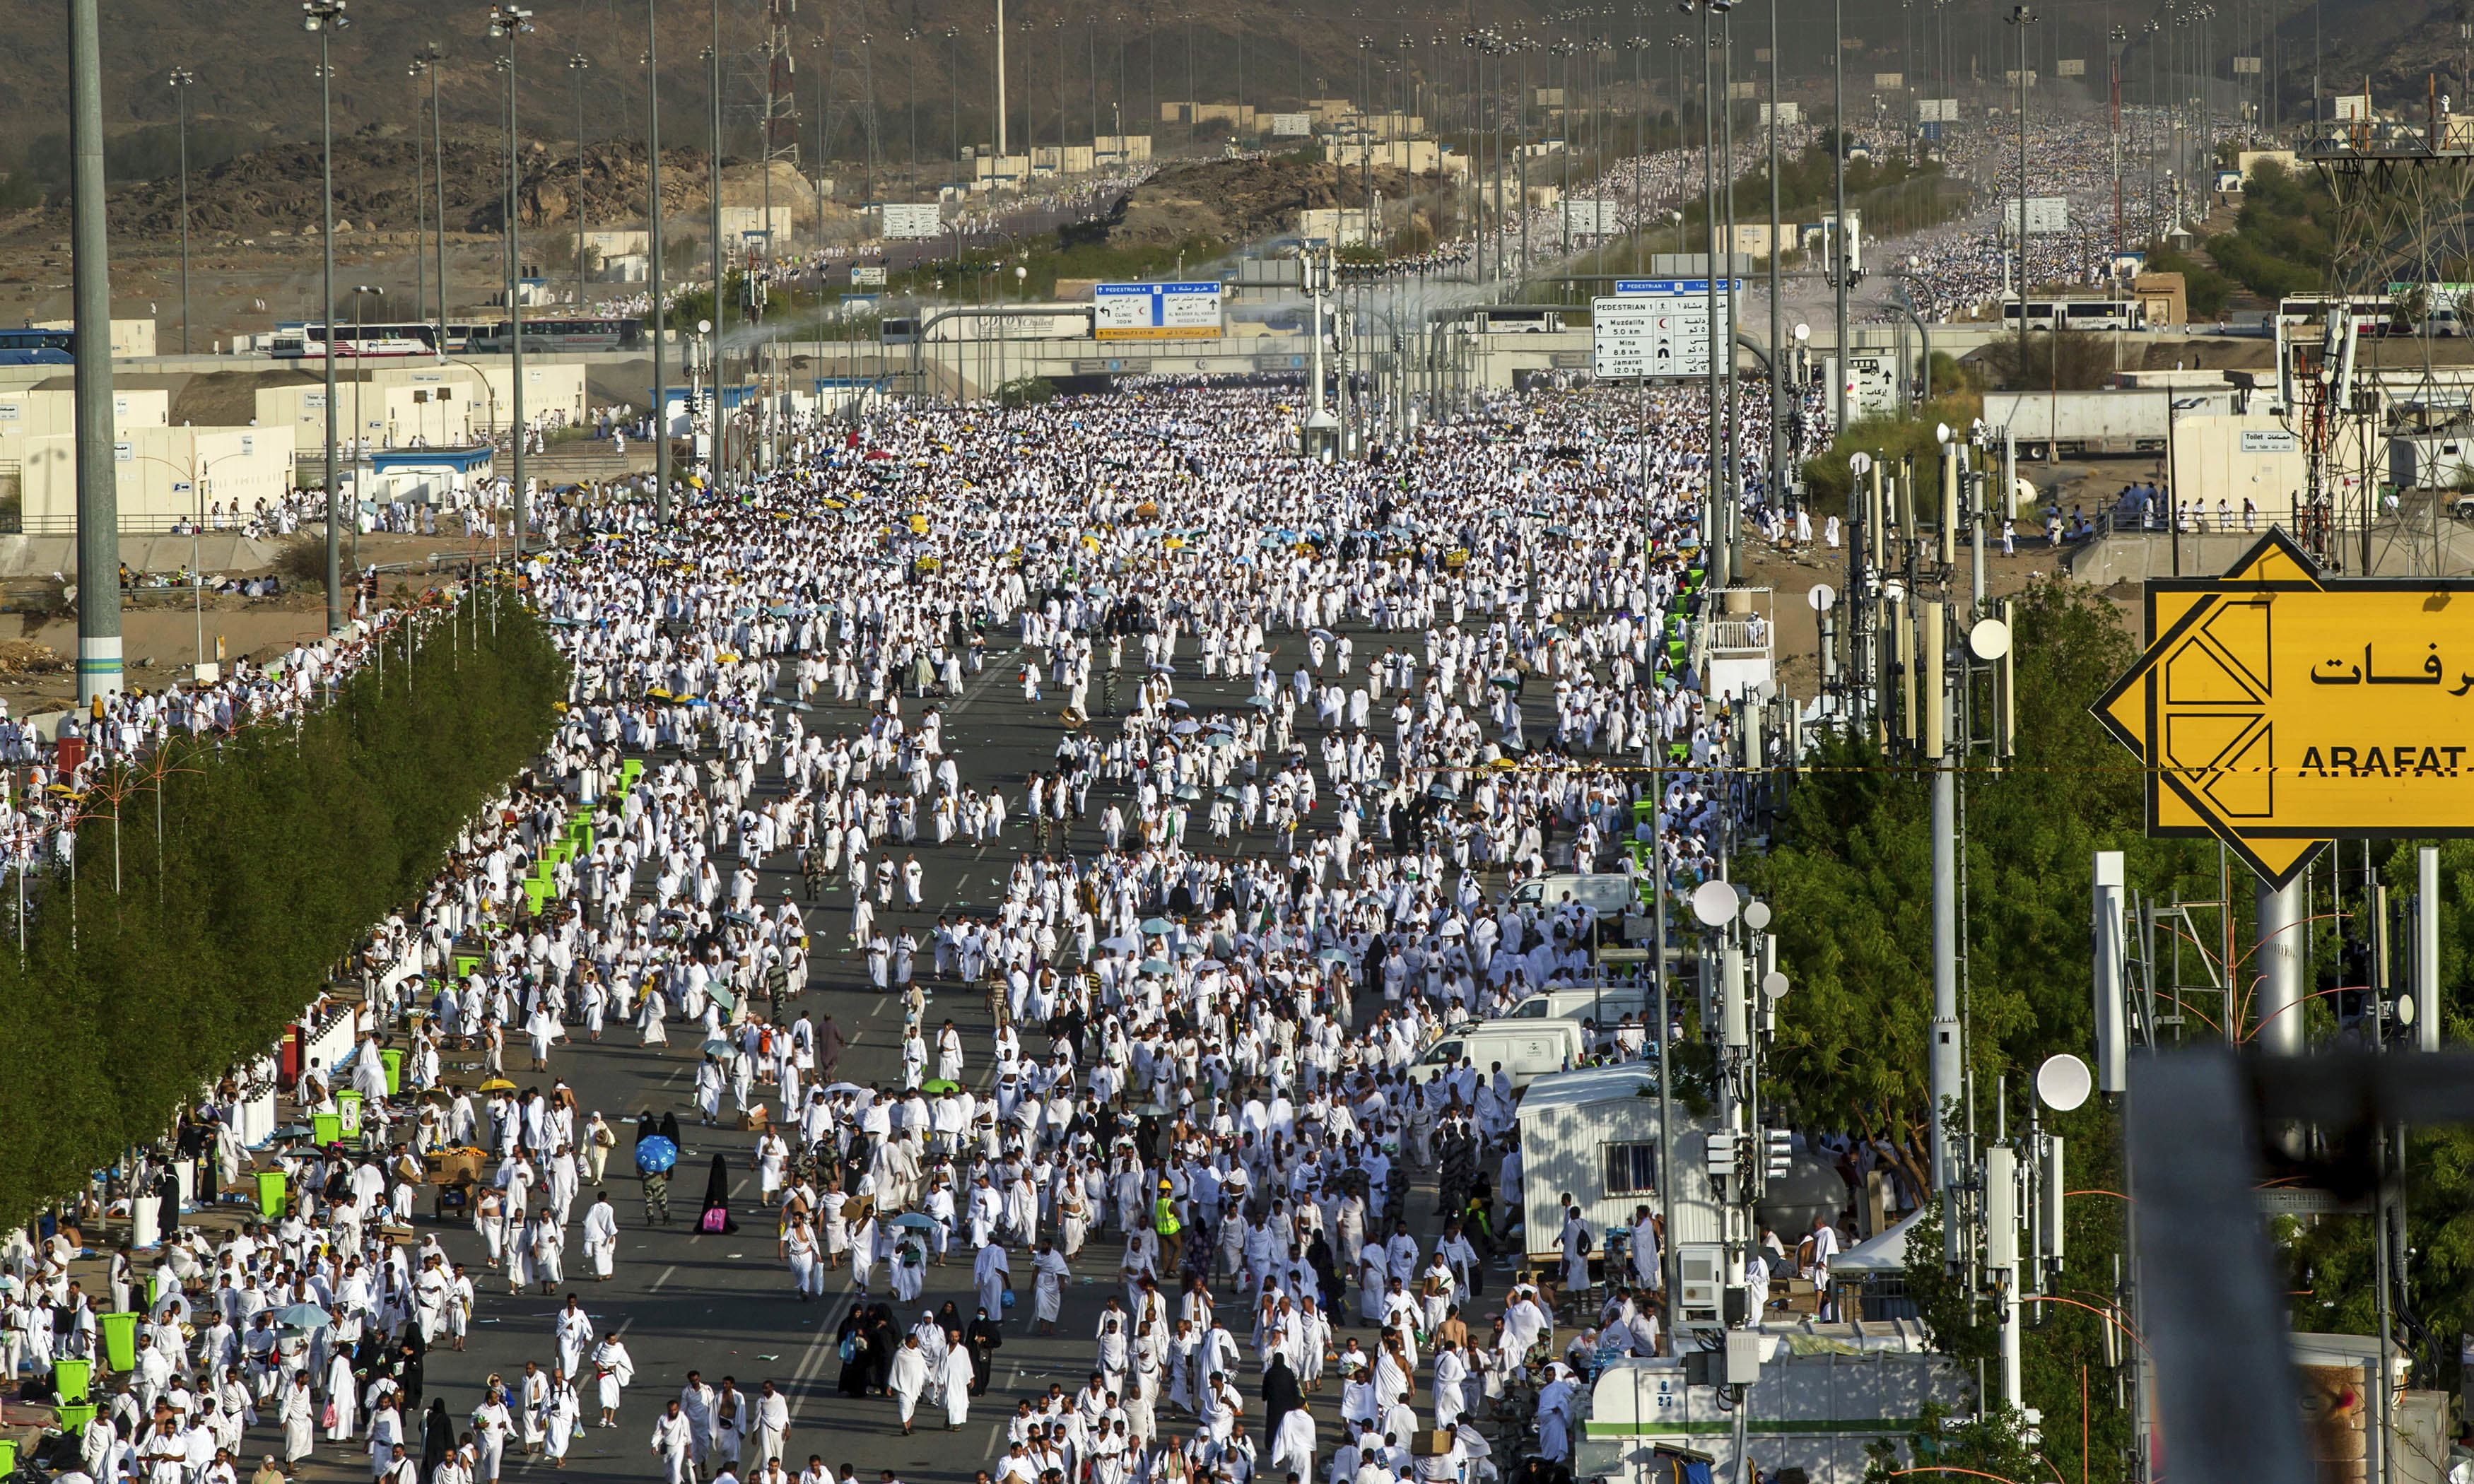 Pilgrims walk towards the Namirah mosque on Arafat Mountain during the annual Haj pilgrimage. —AFP